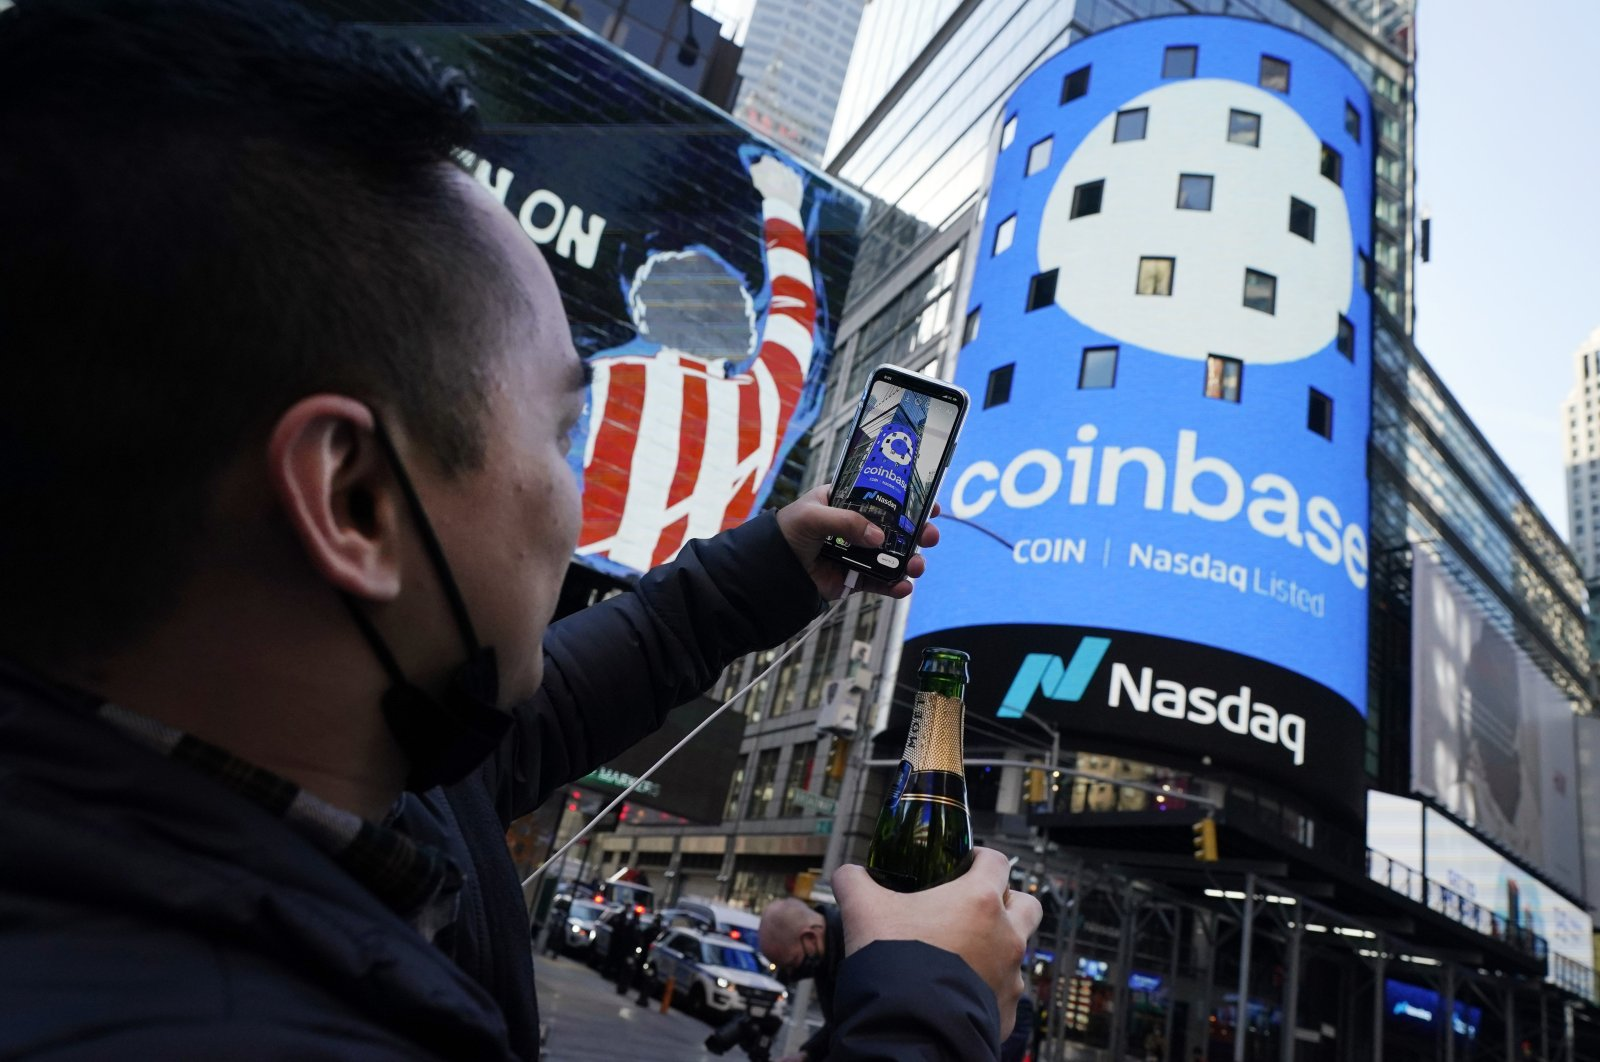 Coinbase employee Daniel Huynh holds a celebratory bottle of champagne as he takes a photograph outside the Nasdaq MarketSite, in Times Square, New York, U.S., Wednesday, April 14, 2021. (AP Photo)